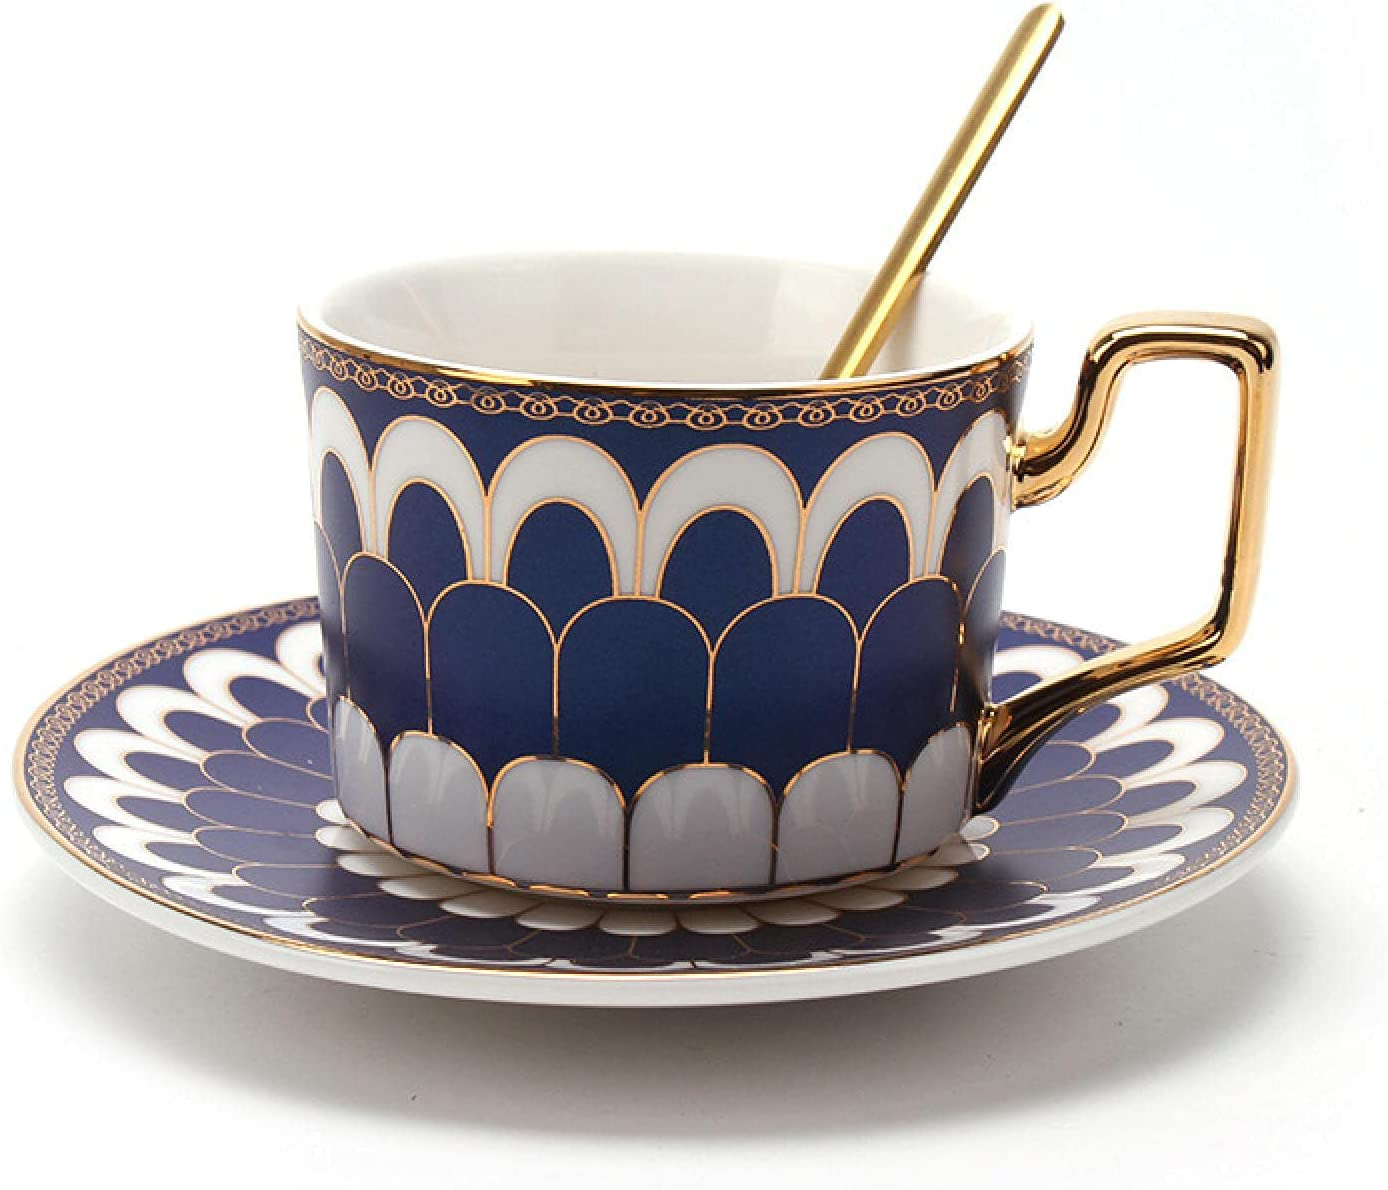 Utes Gold Plated Ceramic Coffee Cup European and After Set Industry No. 1 Quality inspection Plate